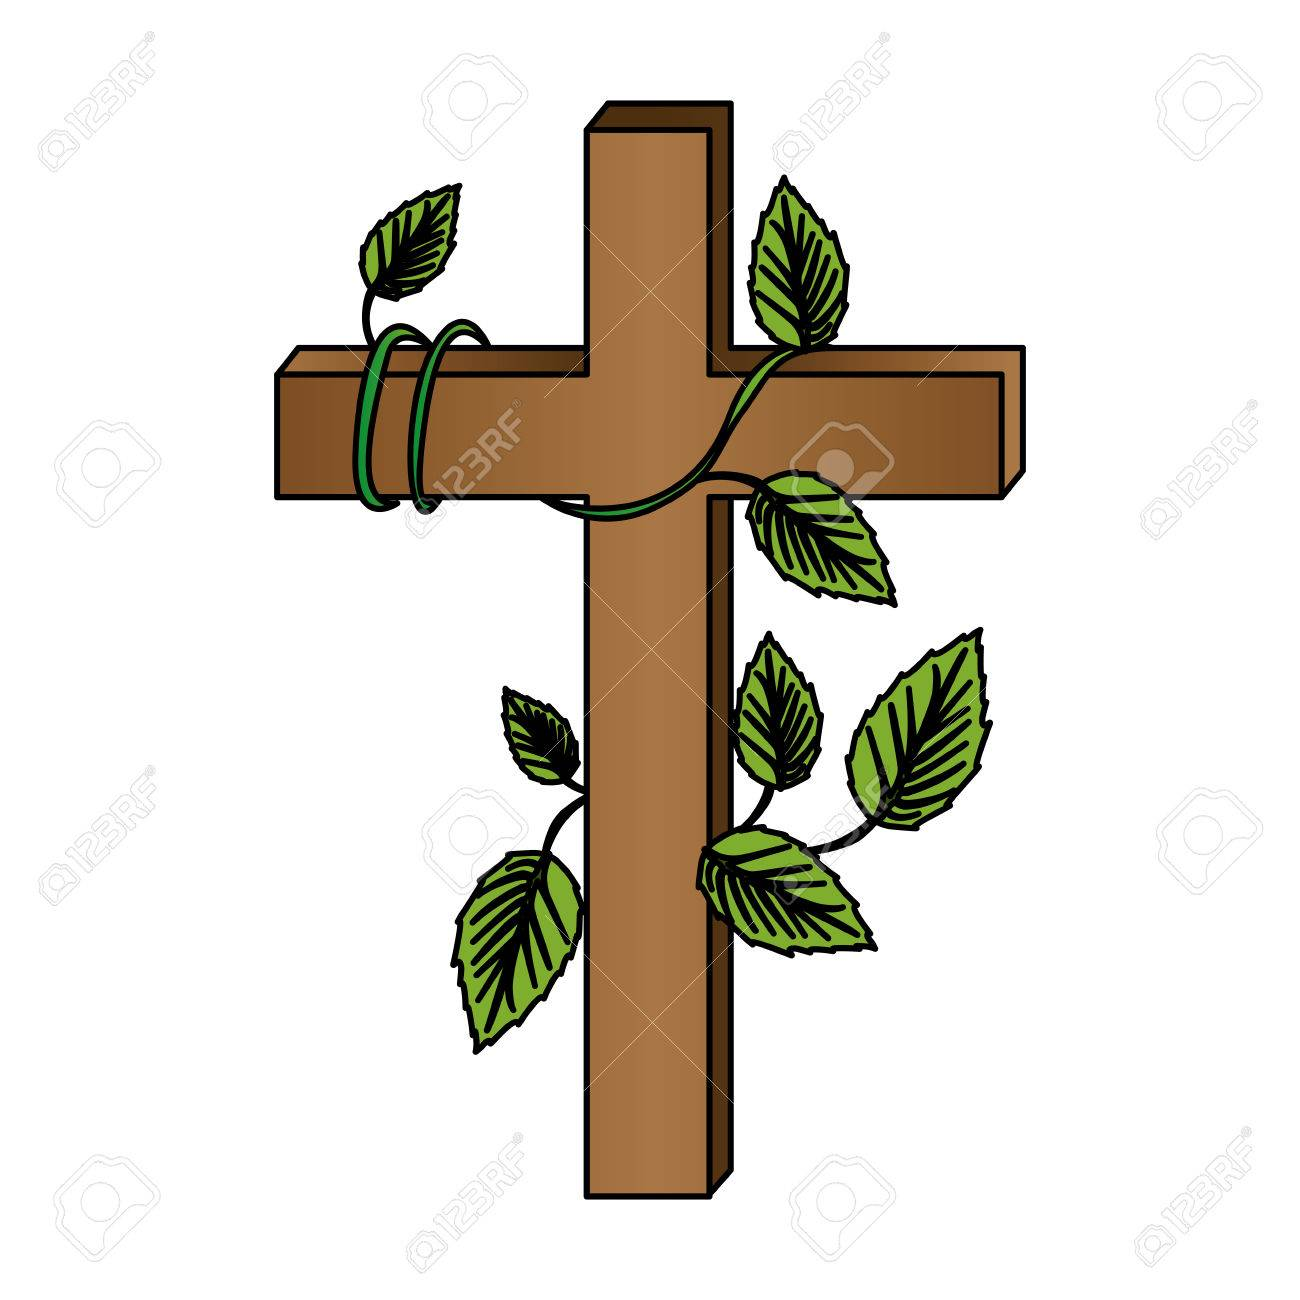 1300x1300 White Background With Colorful Wooden Cross And Creeper Plant